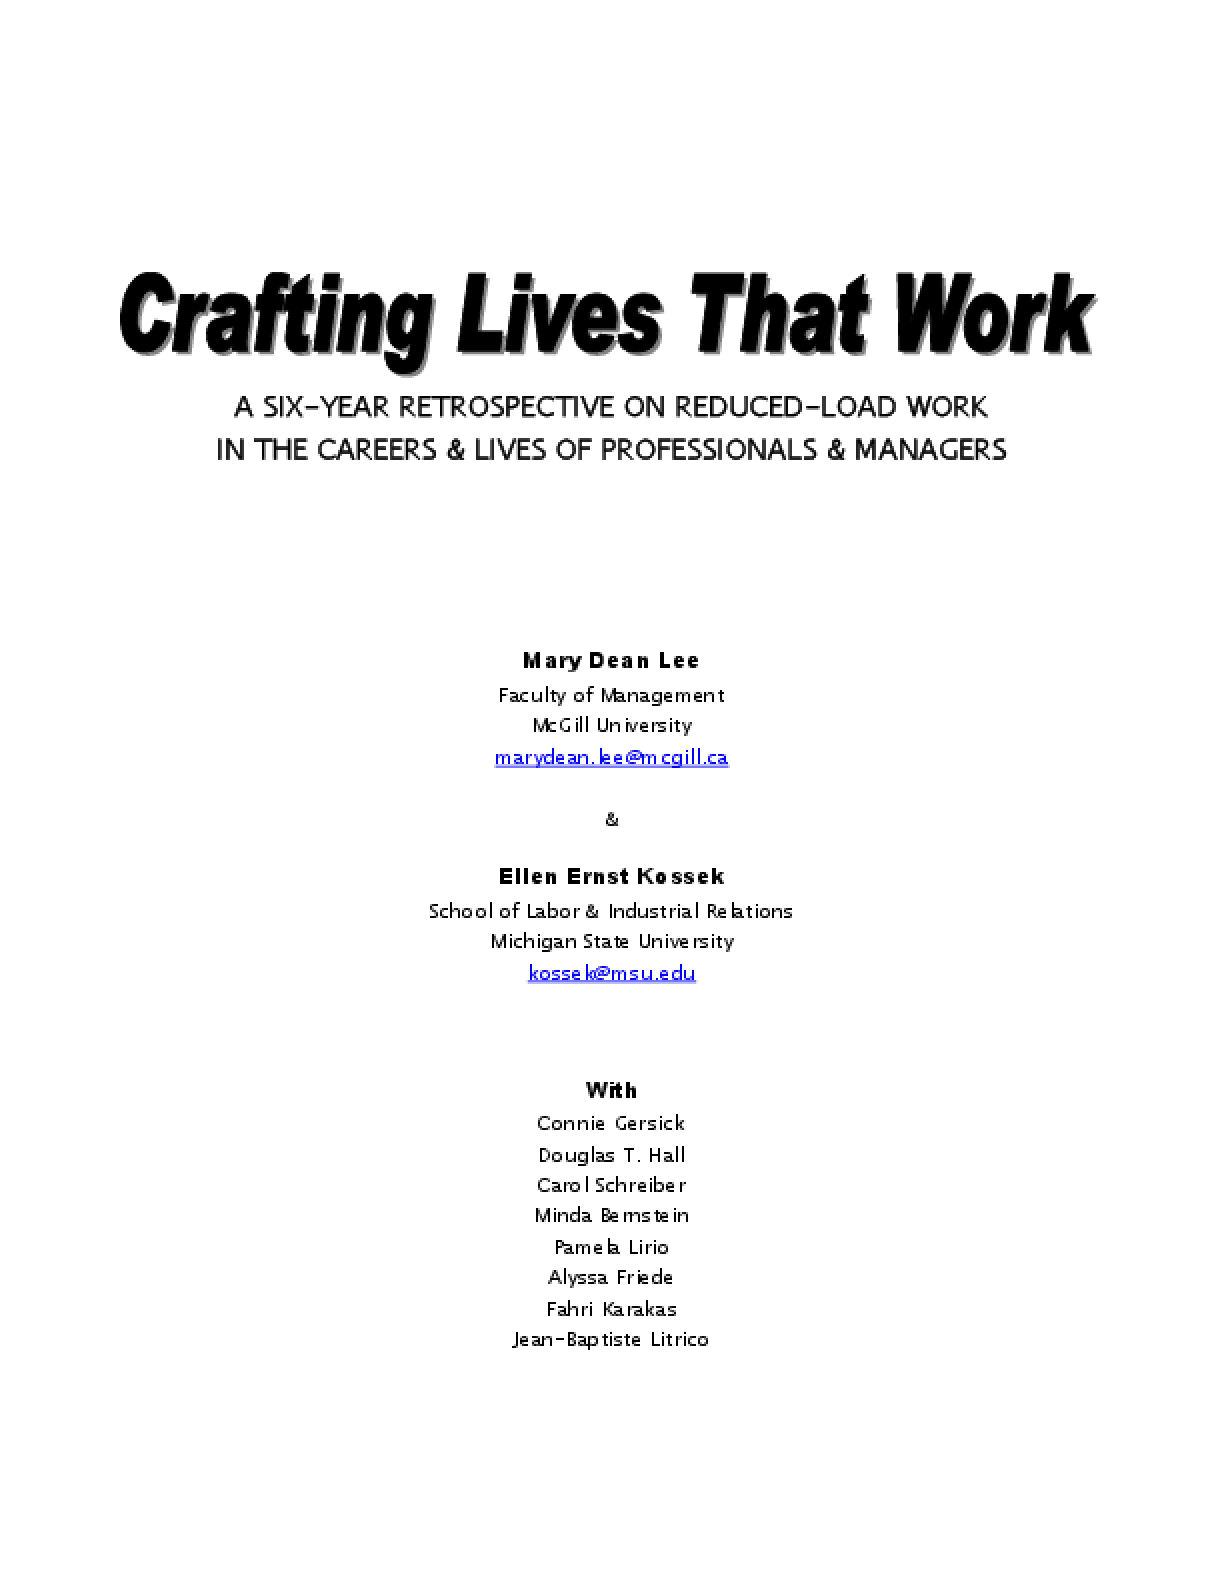 Crafting Lives That Work: A Six-Year Retrospective on Reduced-Load Work in the Careers and Lives of Professionals and Managers